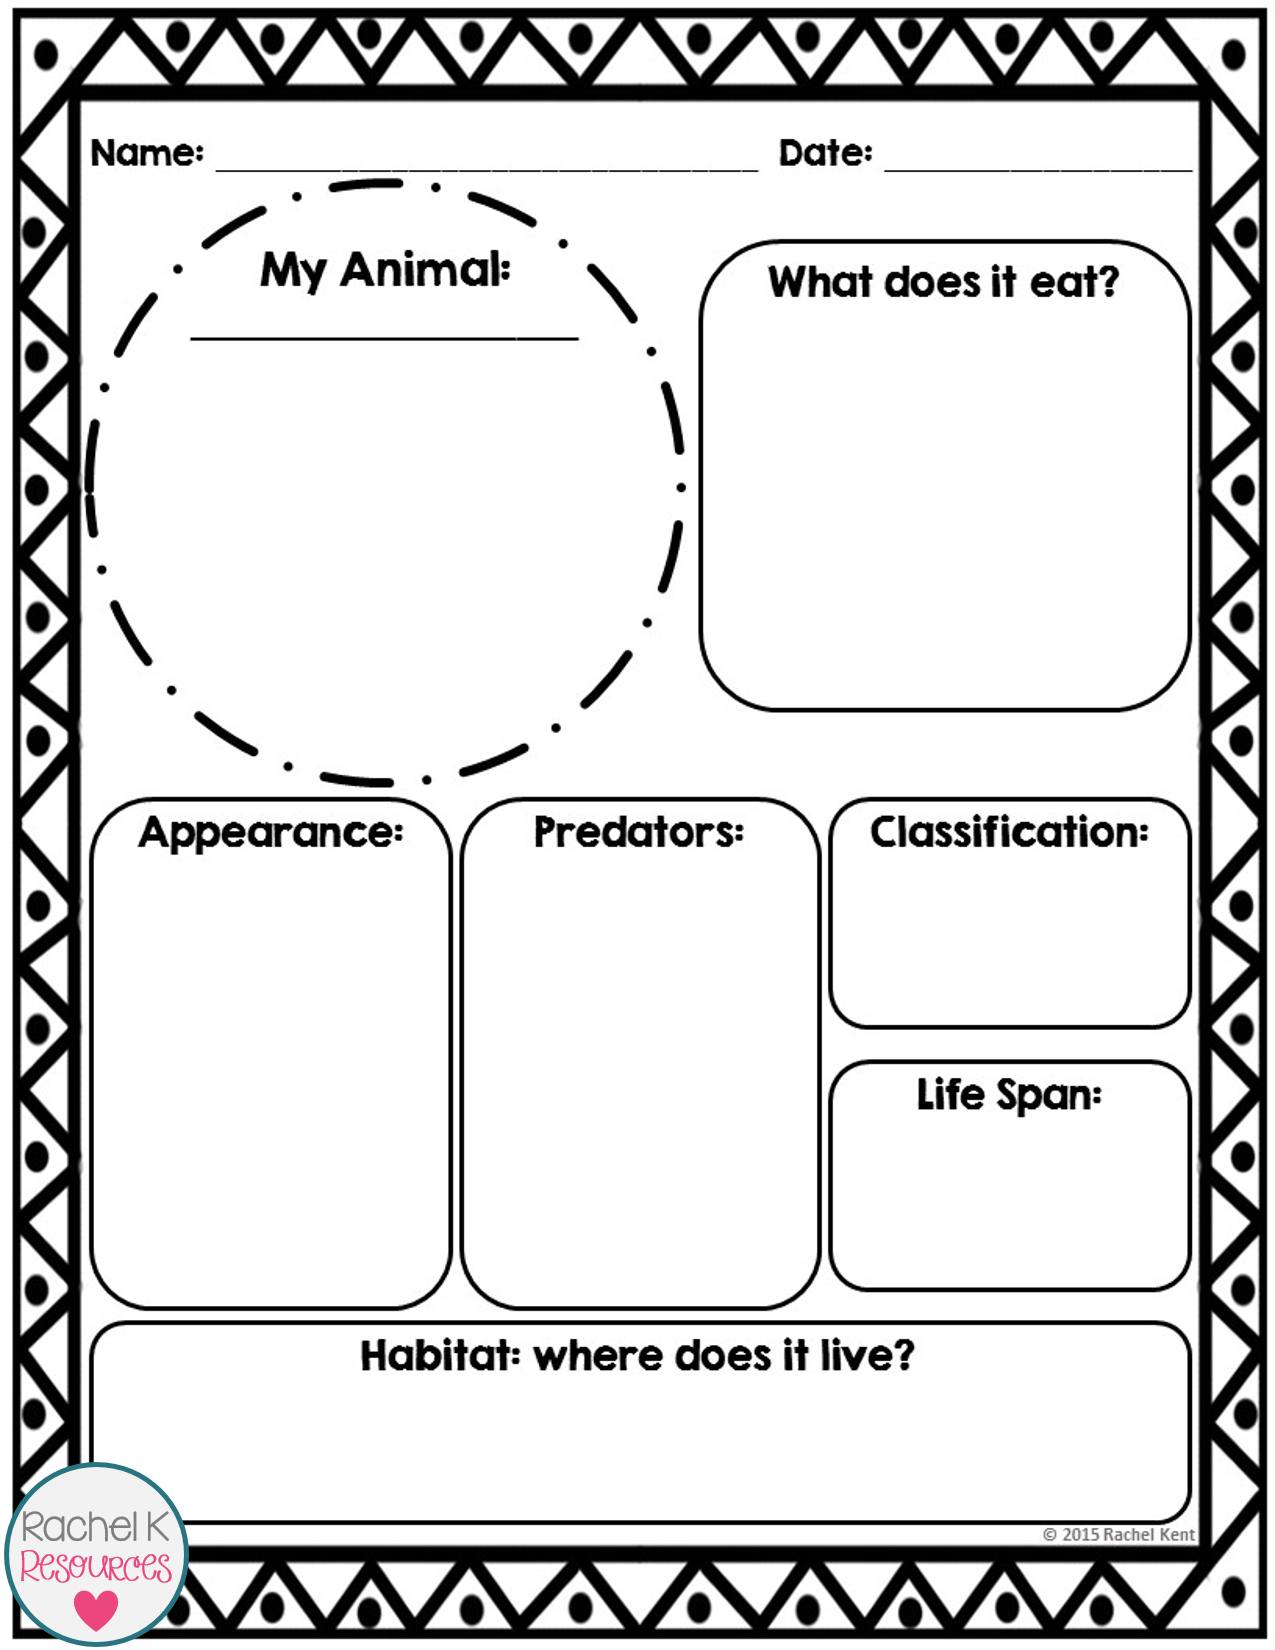 Animal Report Template | Science | Report Template Inside Animal Report Template